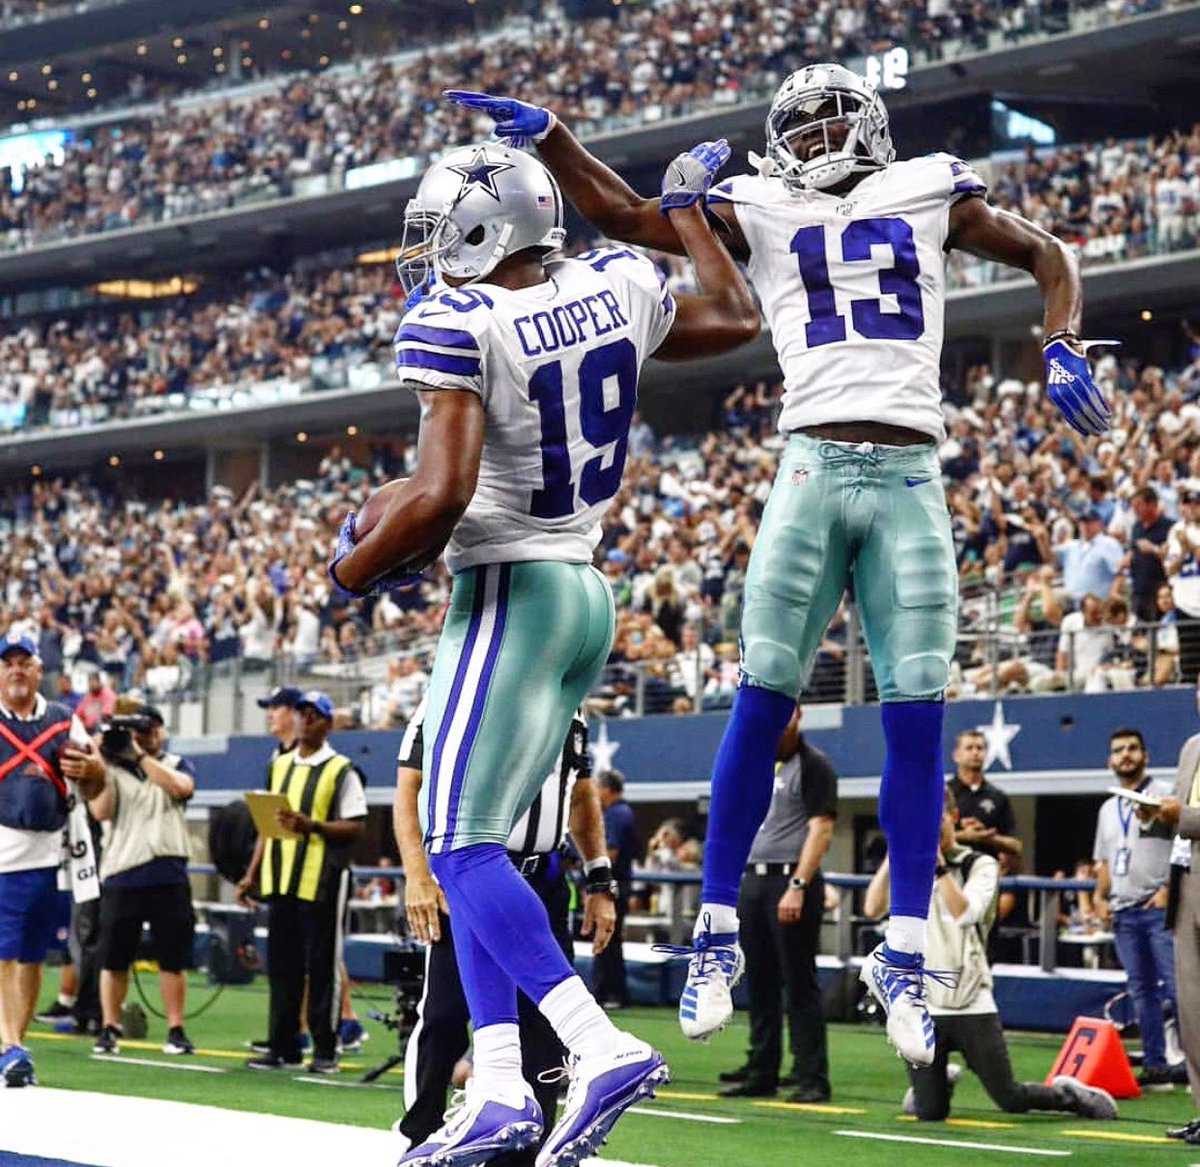 Bout that hype 🤞🏾⚠️🍎 #MondayNightLights @DallasCowboys https://t.co/kf1aSyec4S